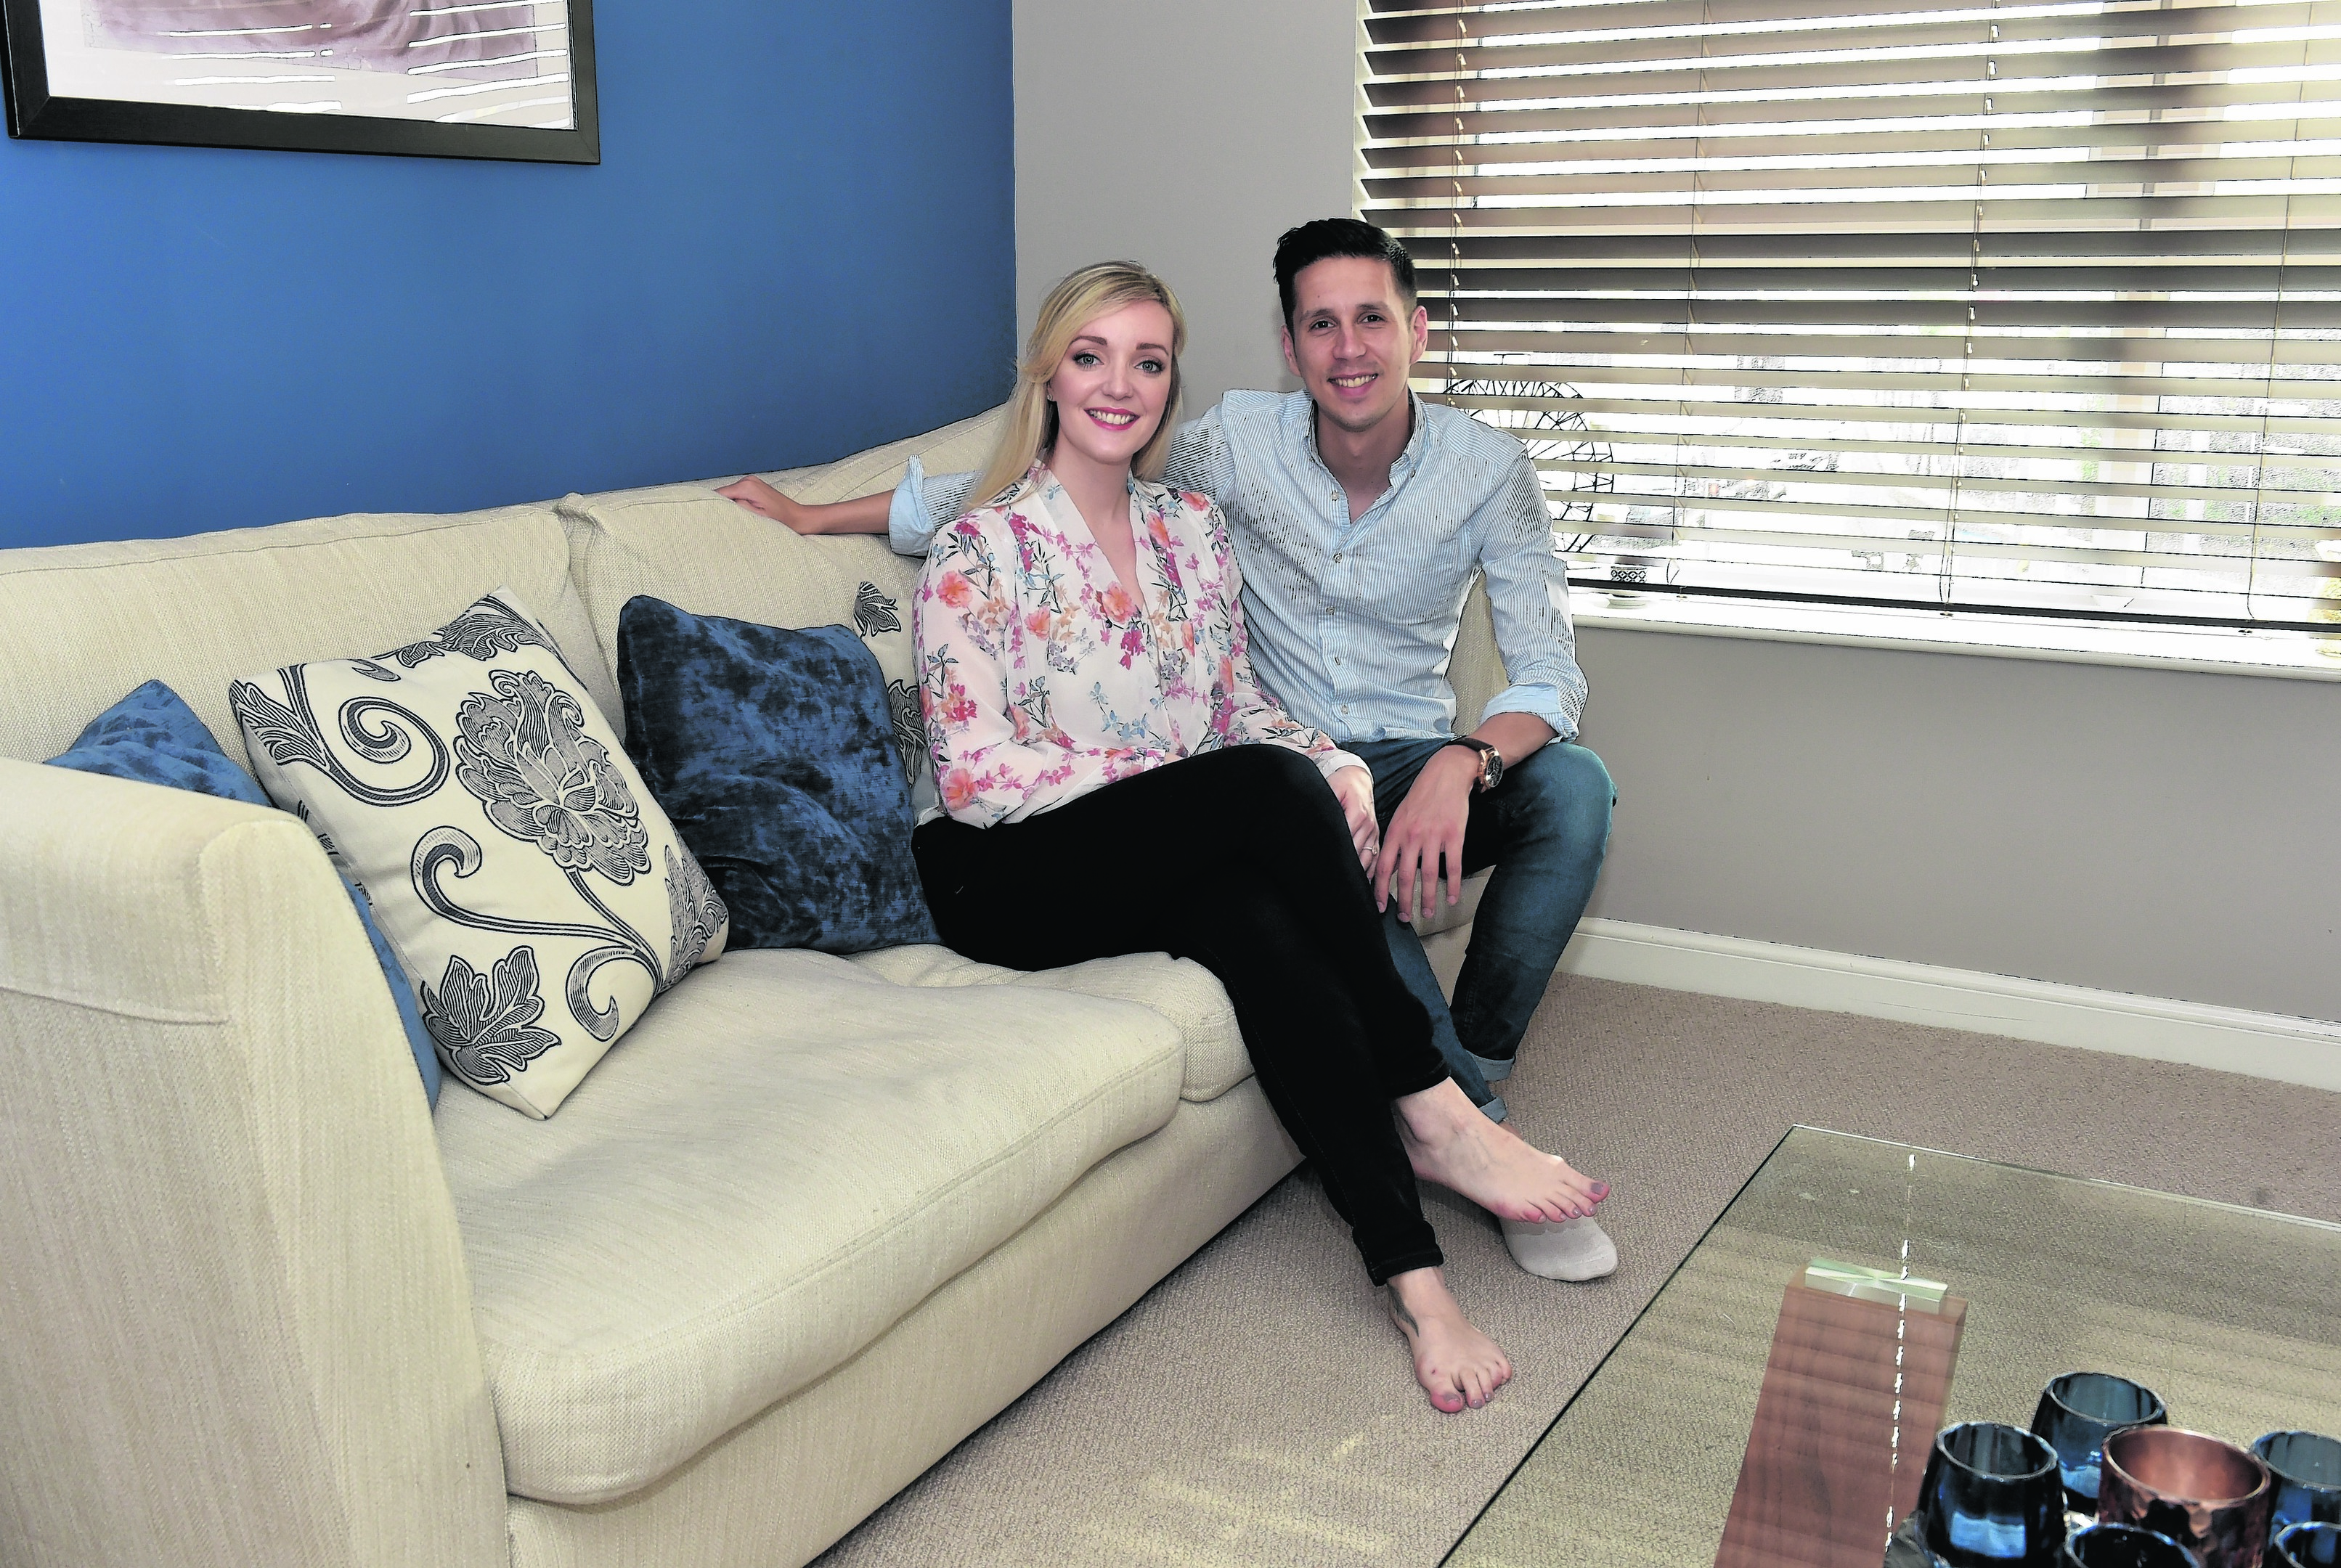 Home - 366C King Street, Aberdeen. Charlotte Bird with fiancee Martin. Picture by COLIN RENNIE May 29, 2016.